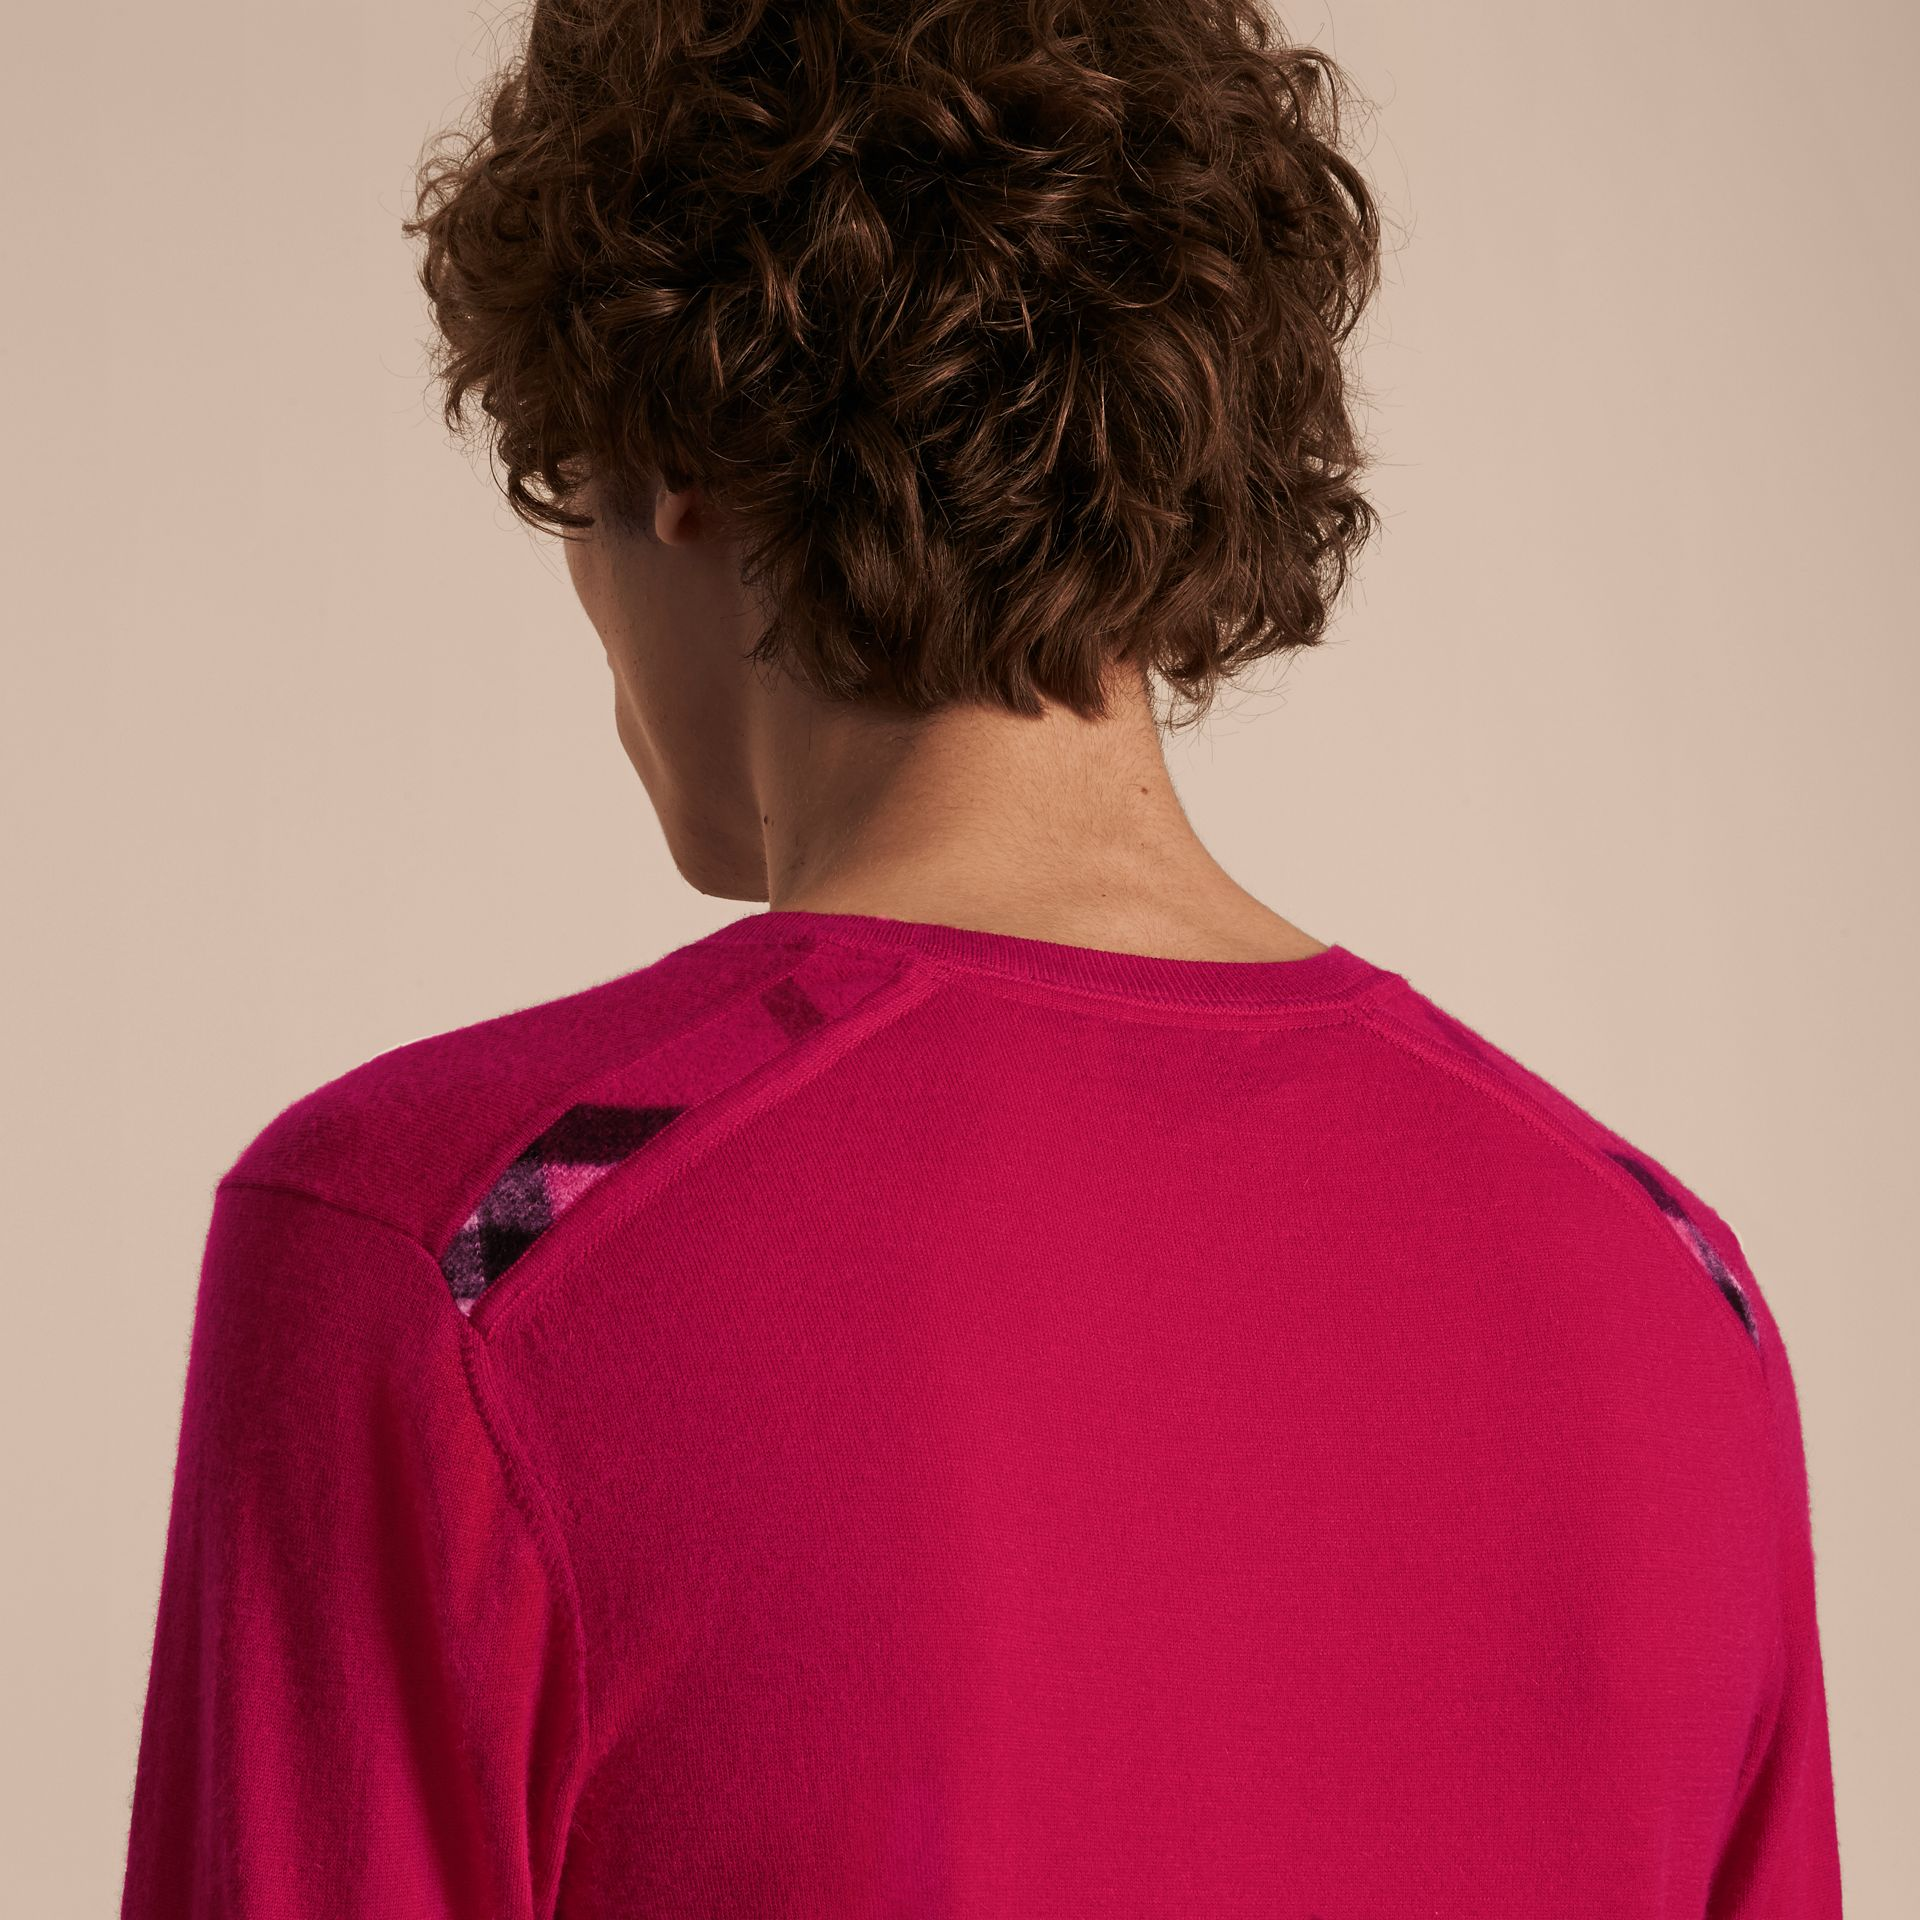 Bright pink Lightweight Crew Neck Cashmere Sweater with Check Trim Bright Pink - gallery image 5